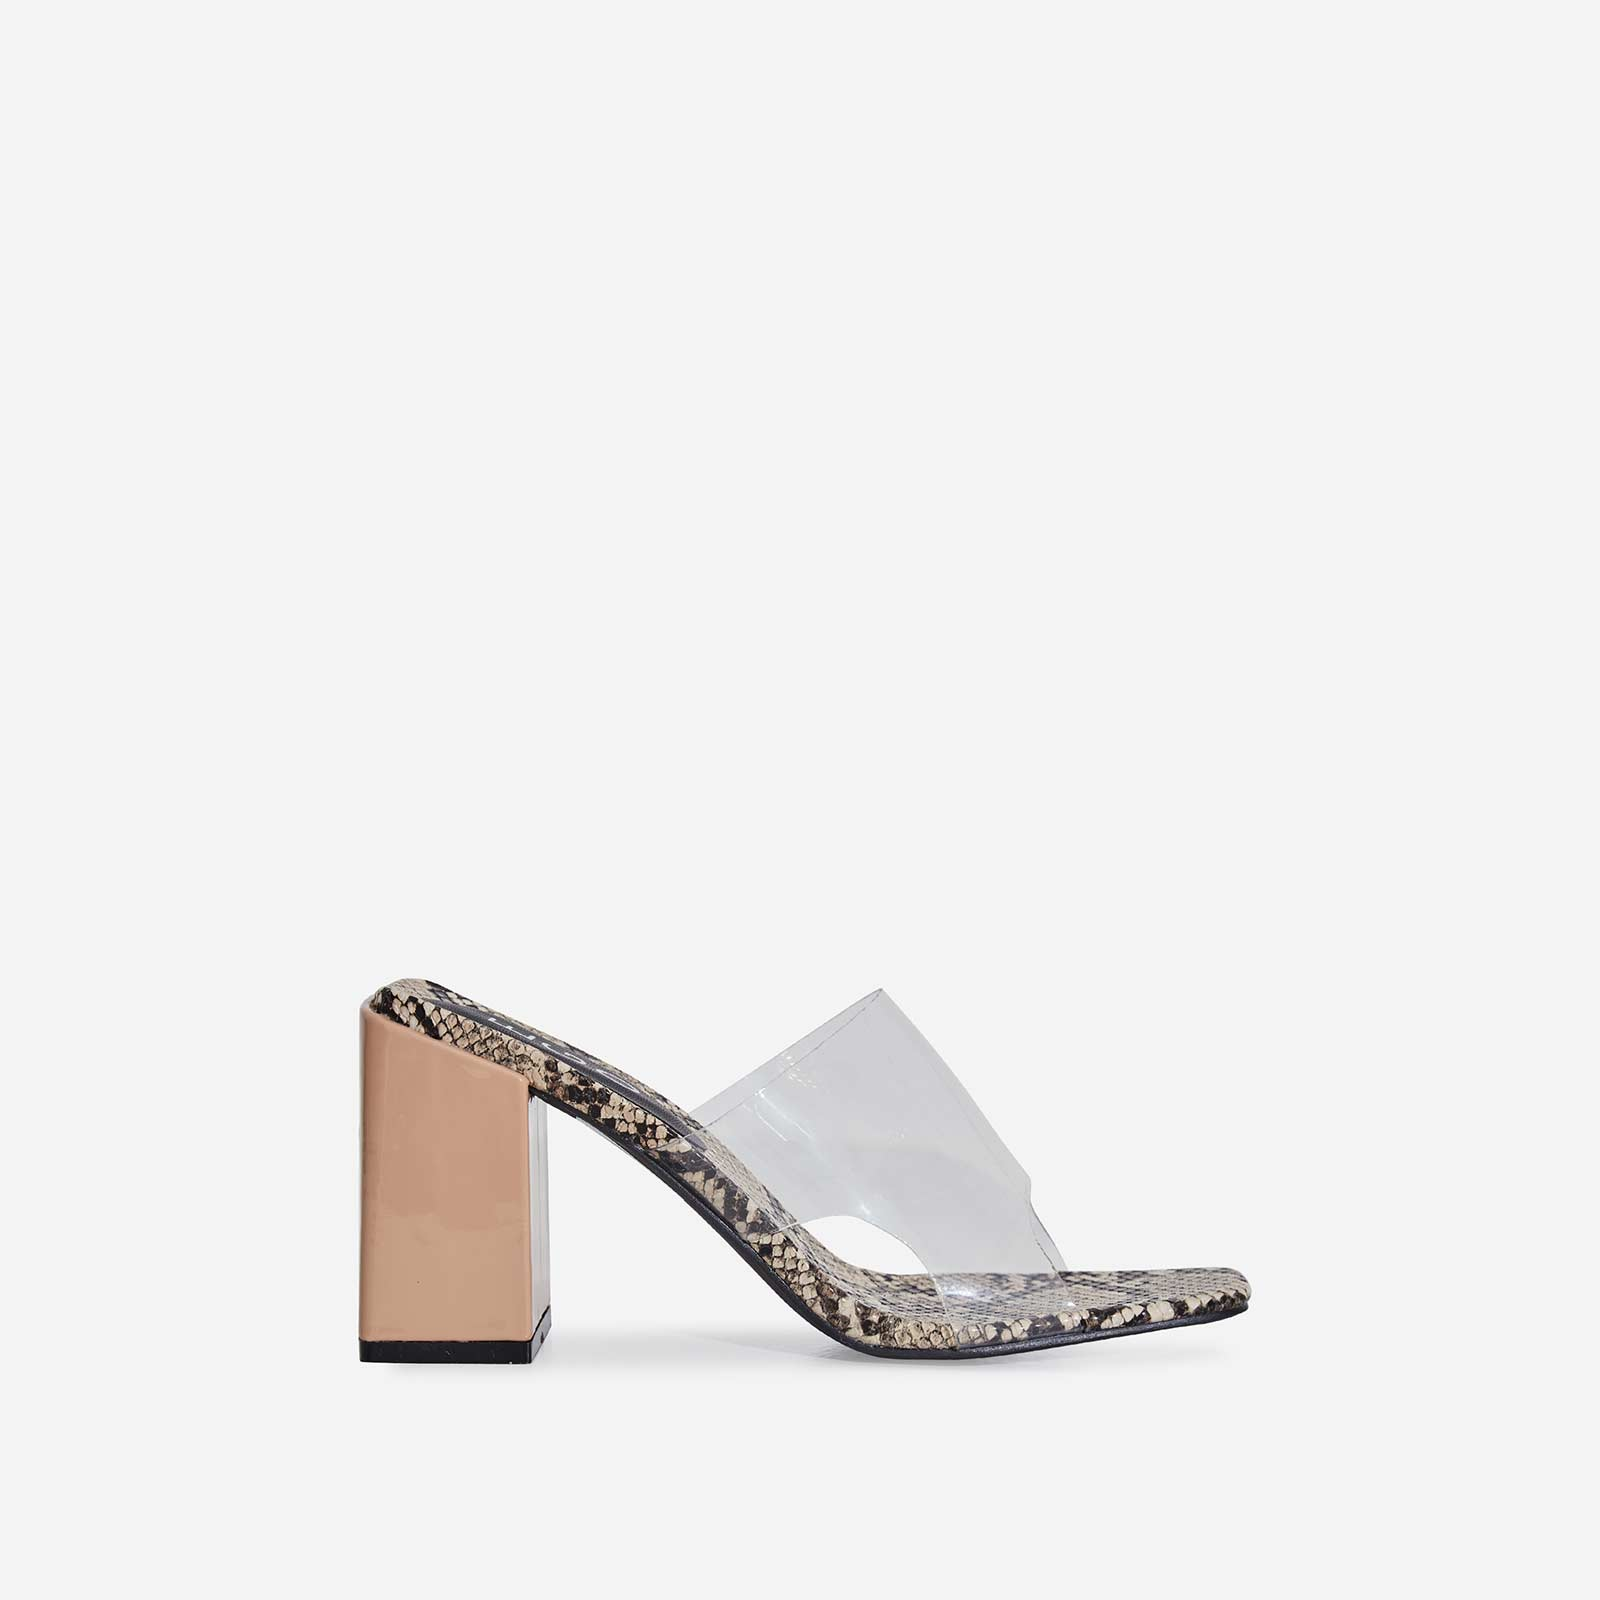 Reaction Perspex Peep Toe Midi Block Heel Nude Snake Print Faux Leather